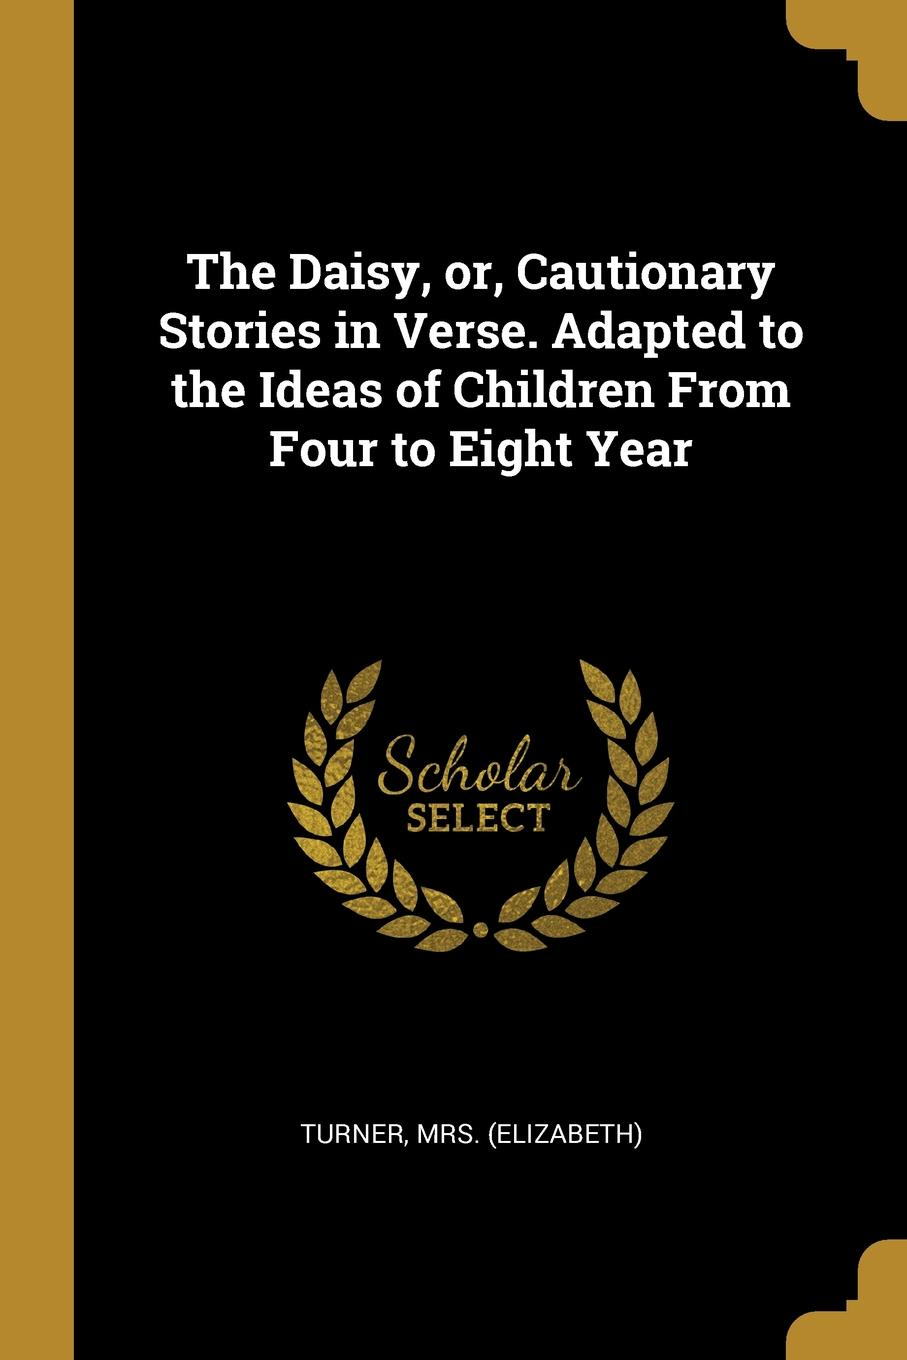 The Daisy, or, Cautionary Stories in Verse. Adapted to the Ideas of Children From Four to Eight Year